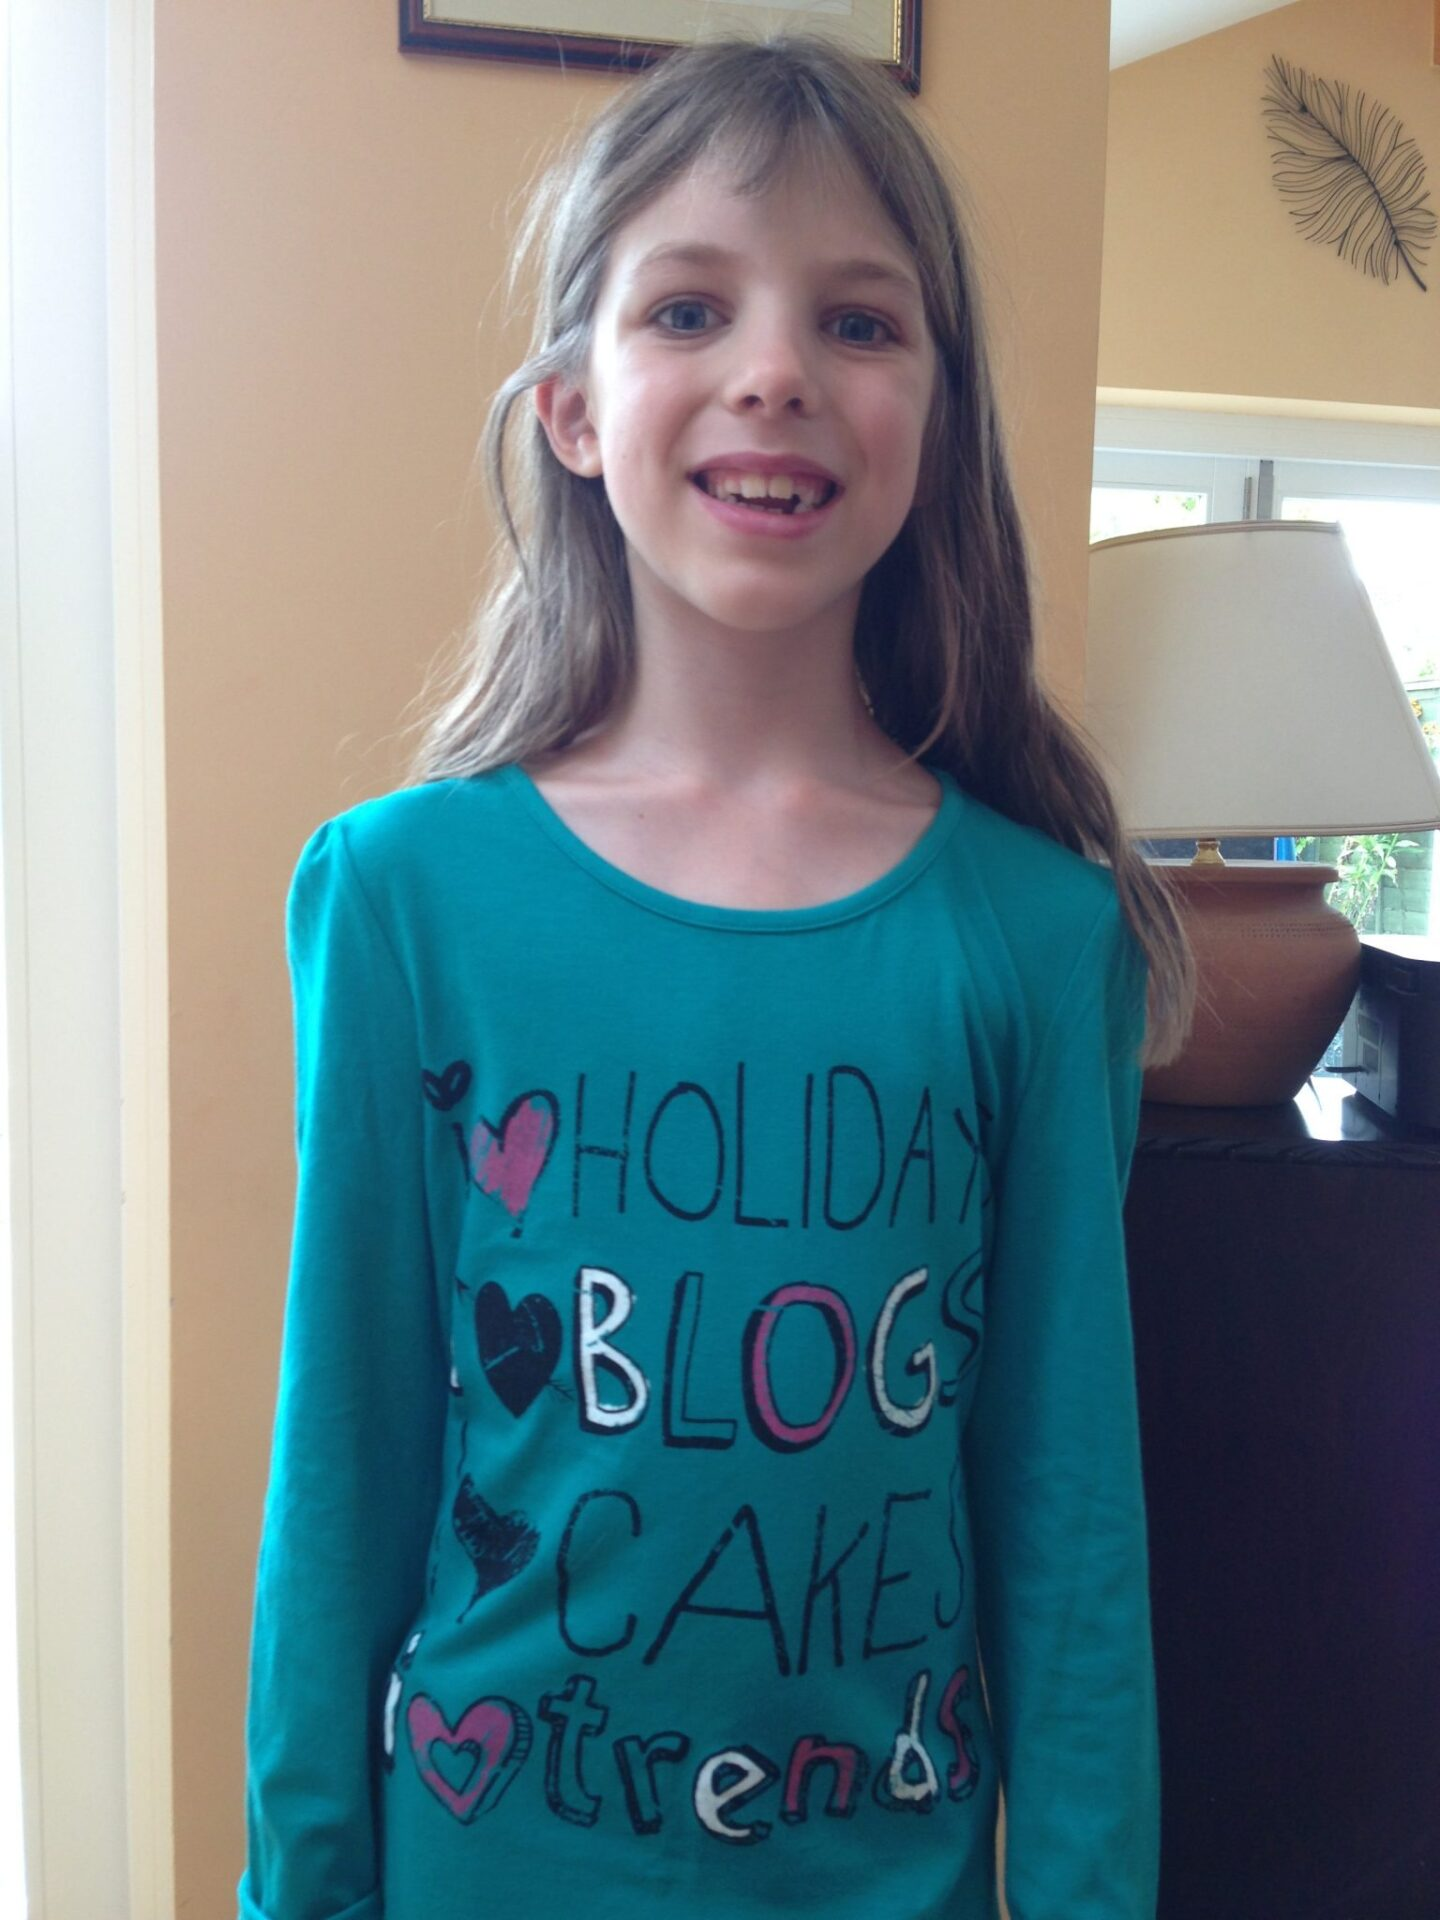 Juggling work and family: I love blogs top